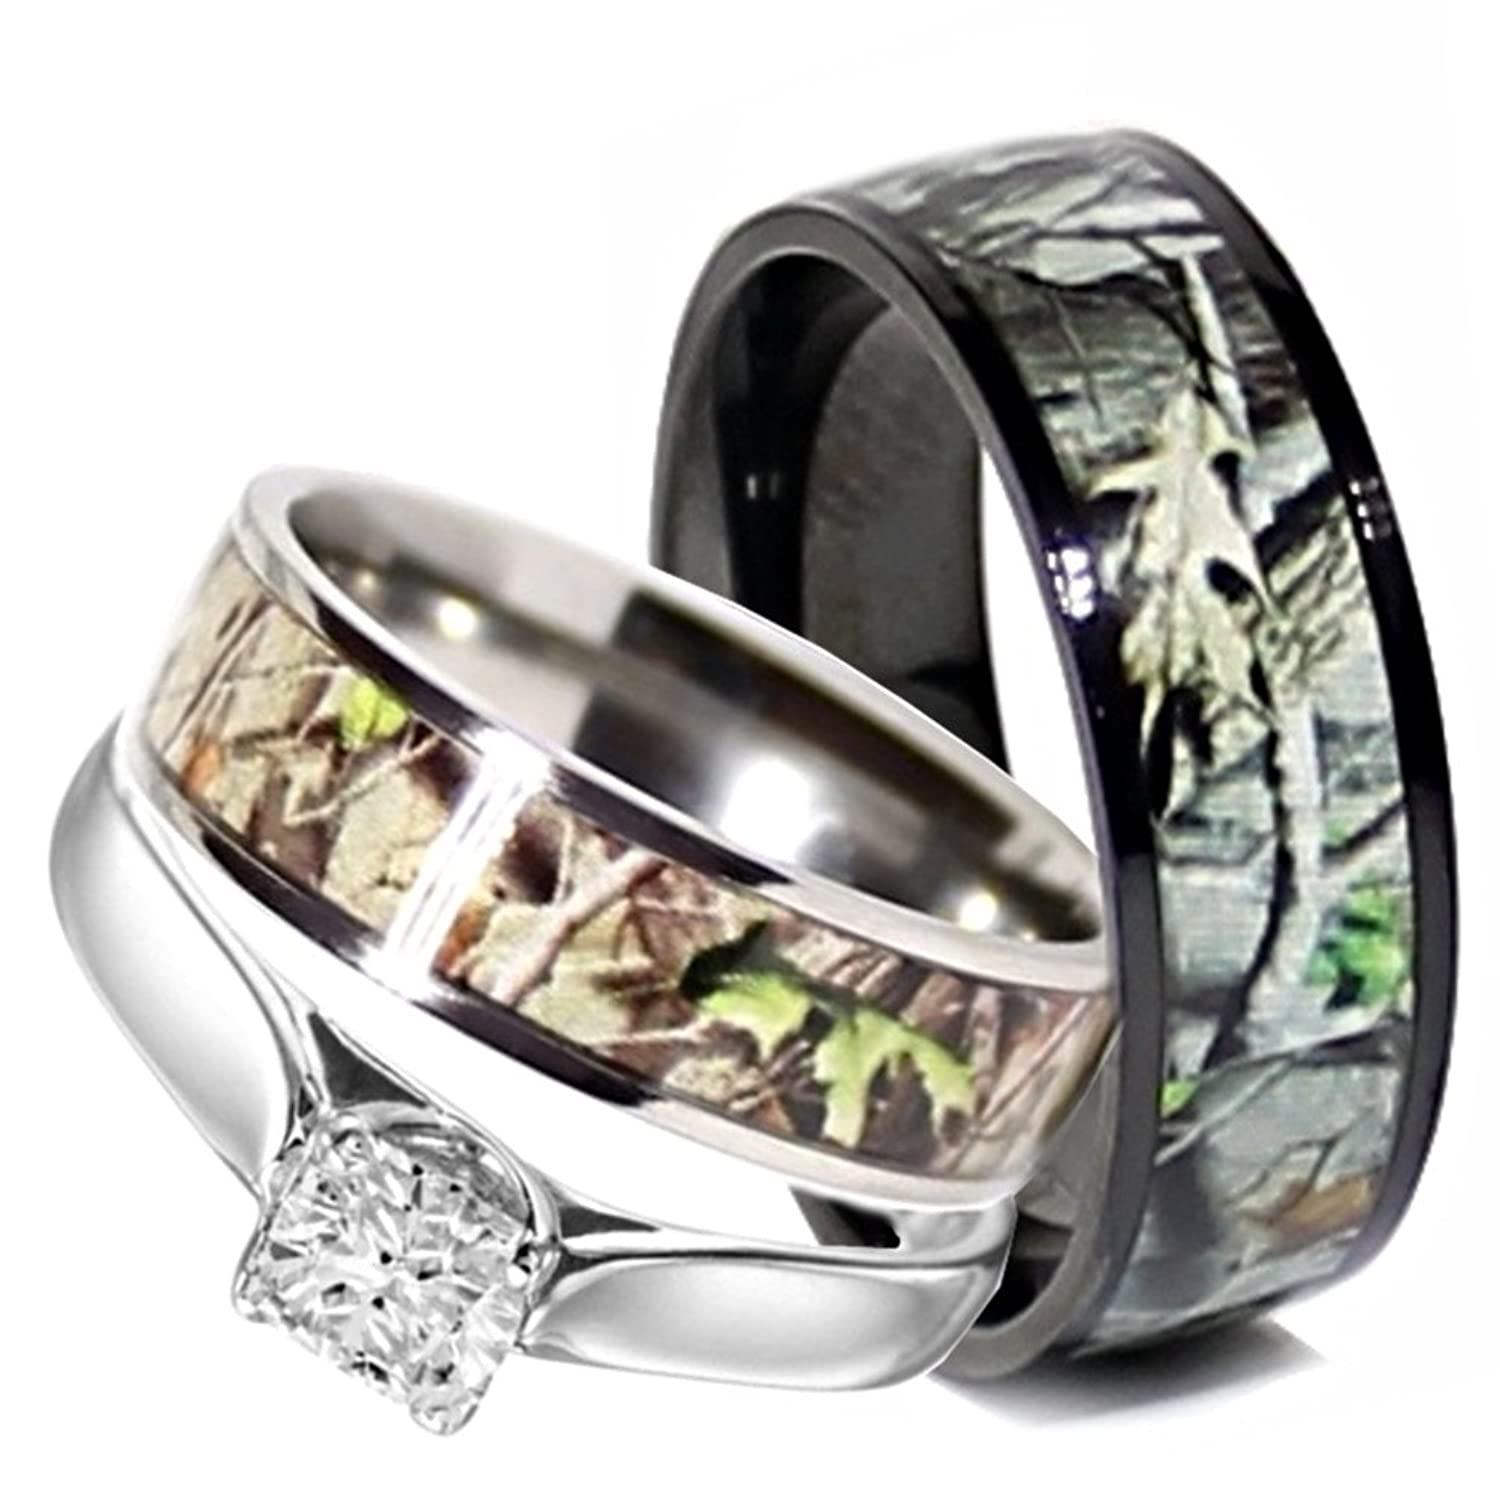 Camo Wedding Rings Set His And Hers 3 Rings Set, Sterling Silver And  Titanium (Size Men 10; Women 10)|Amazon.com